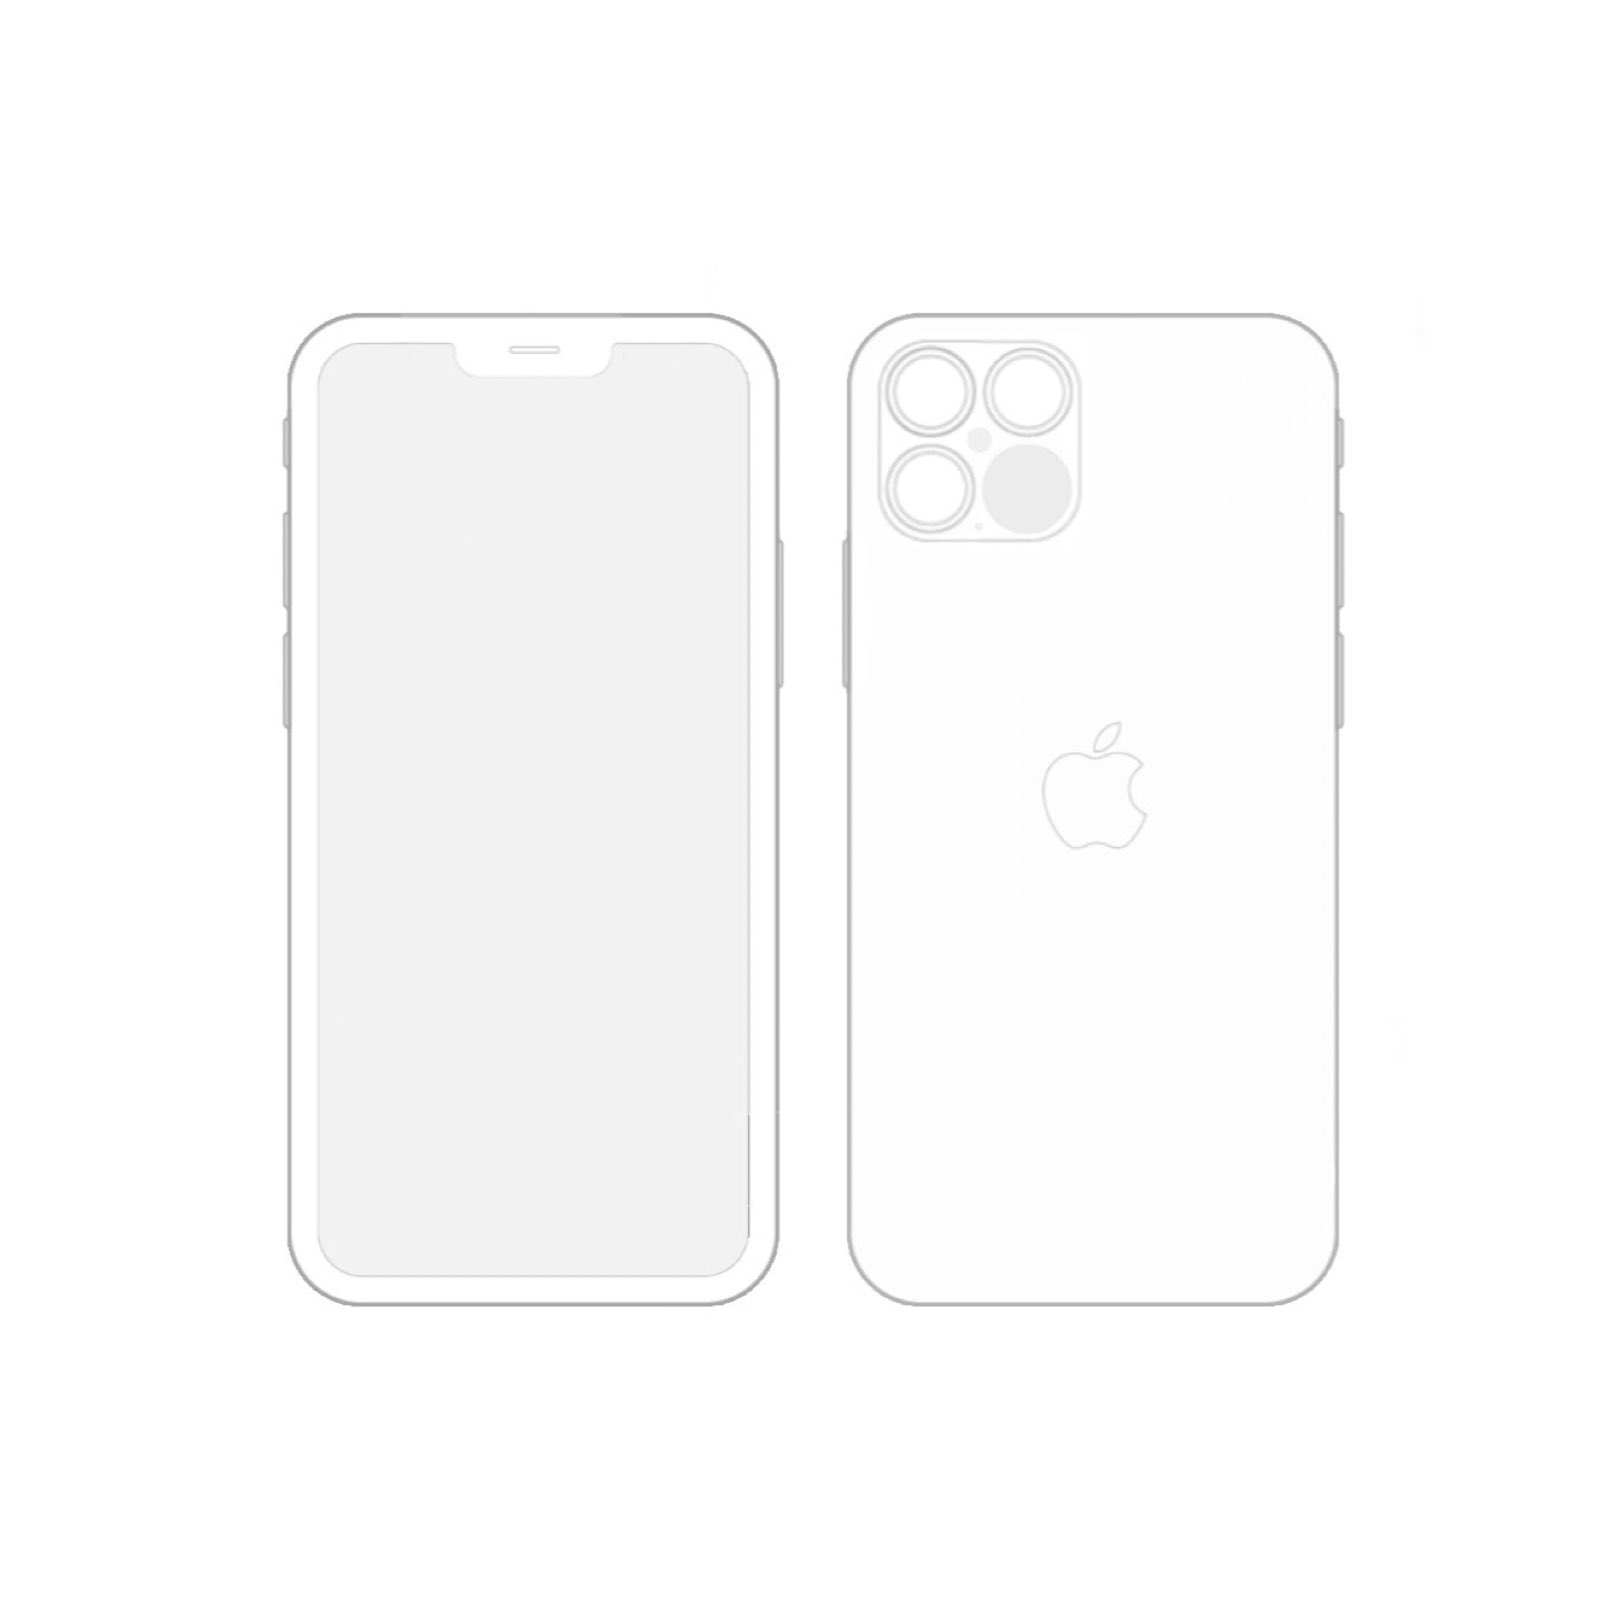 iphone 12 with smaller notch